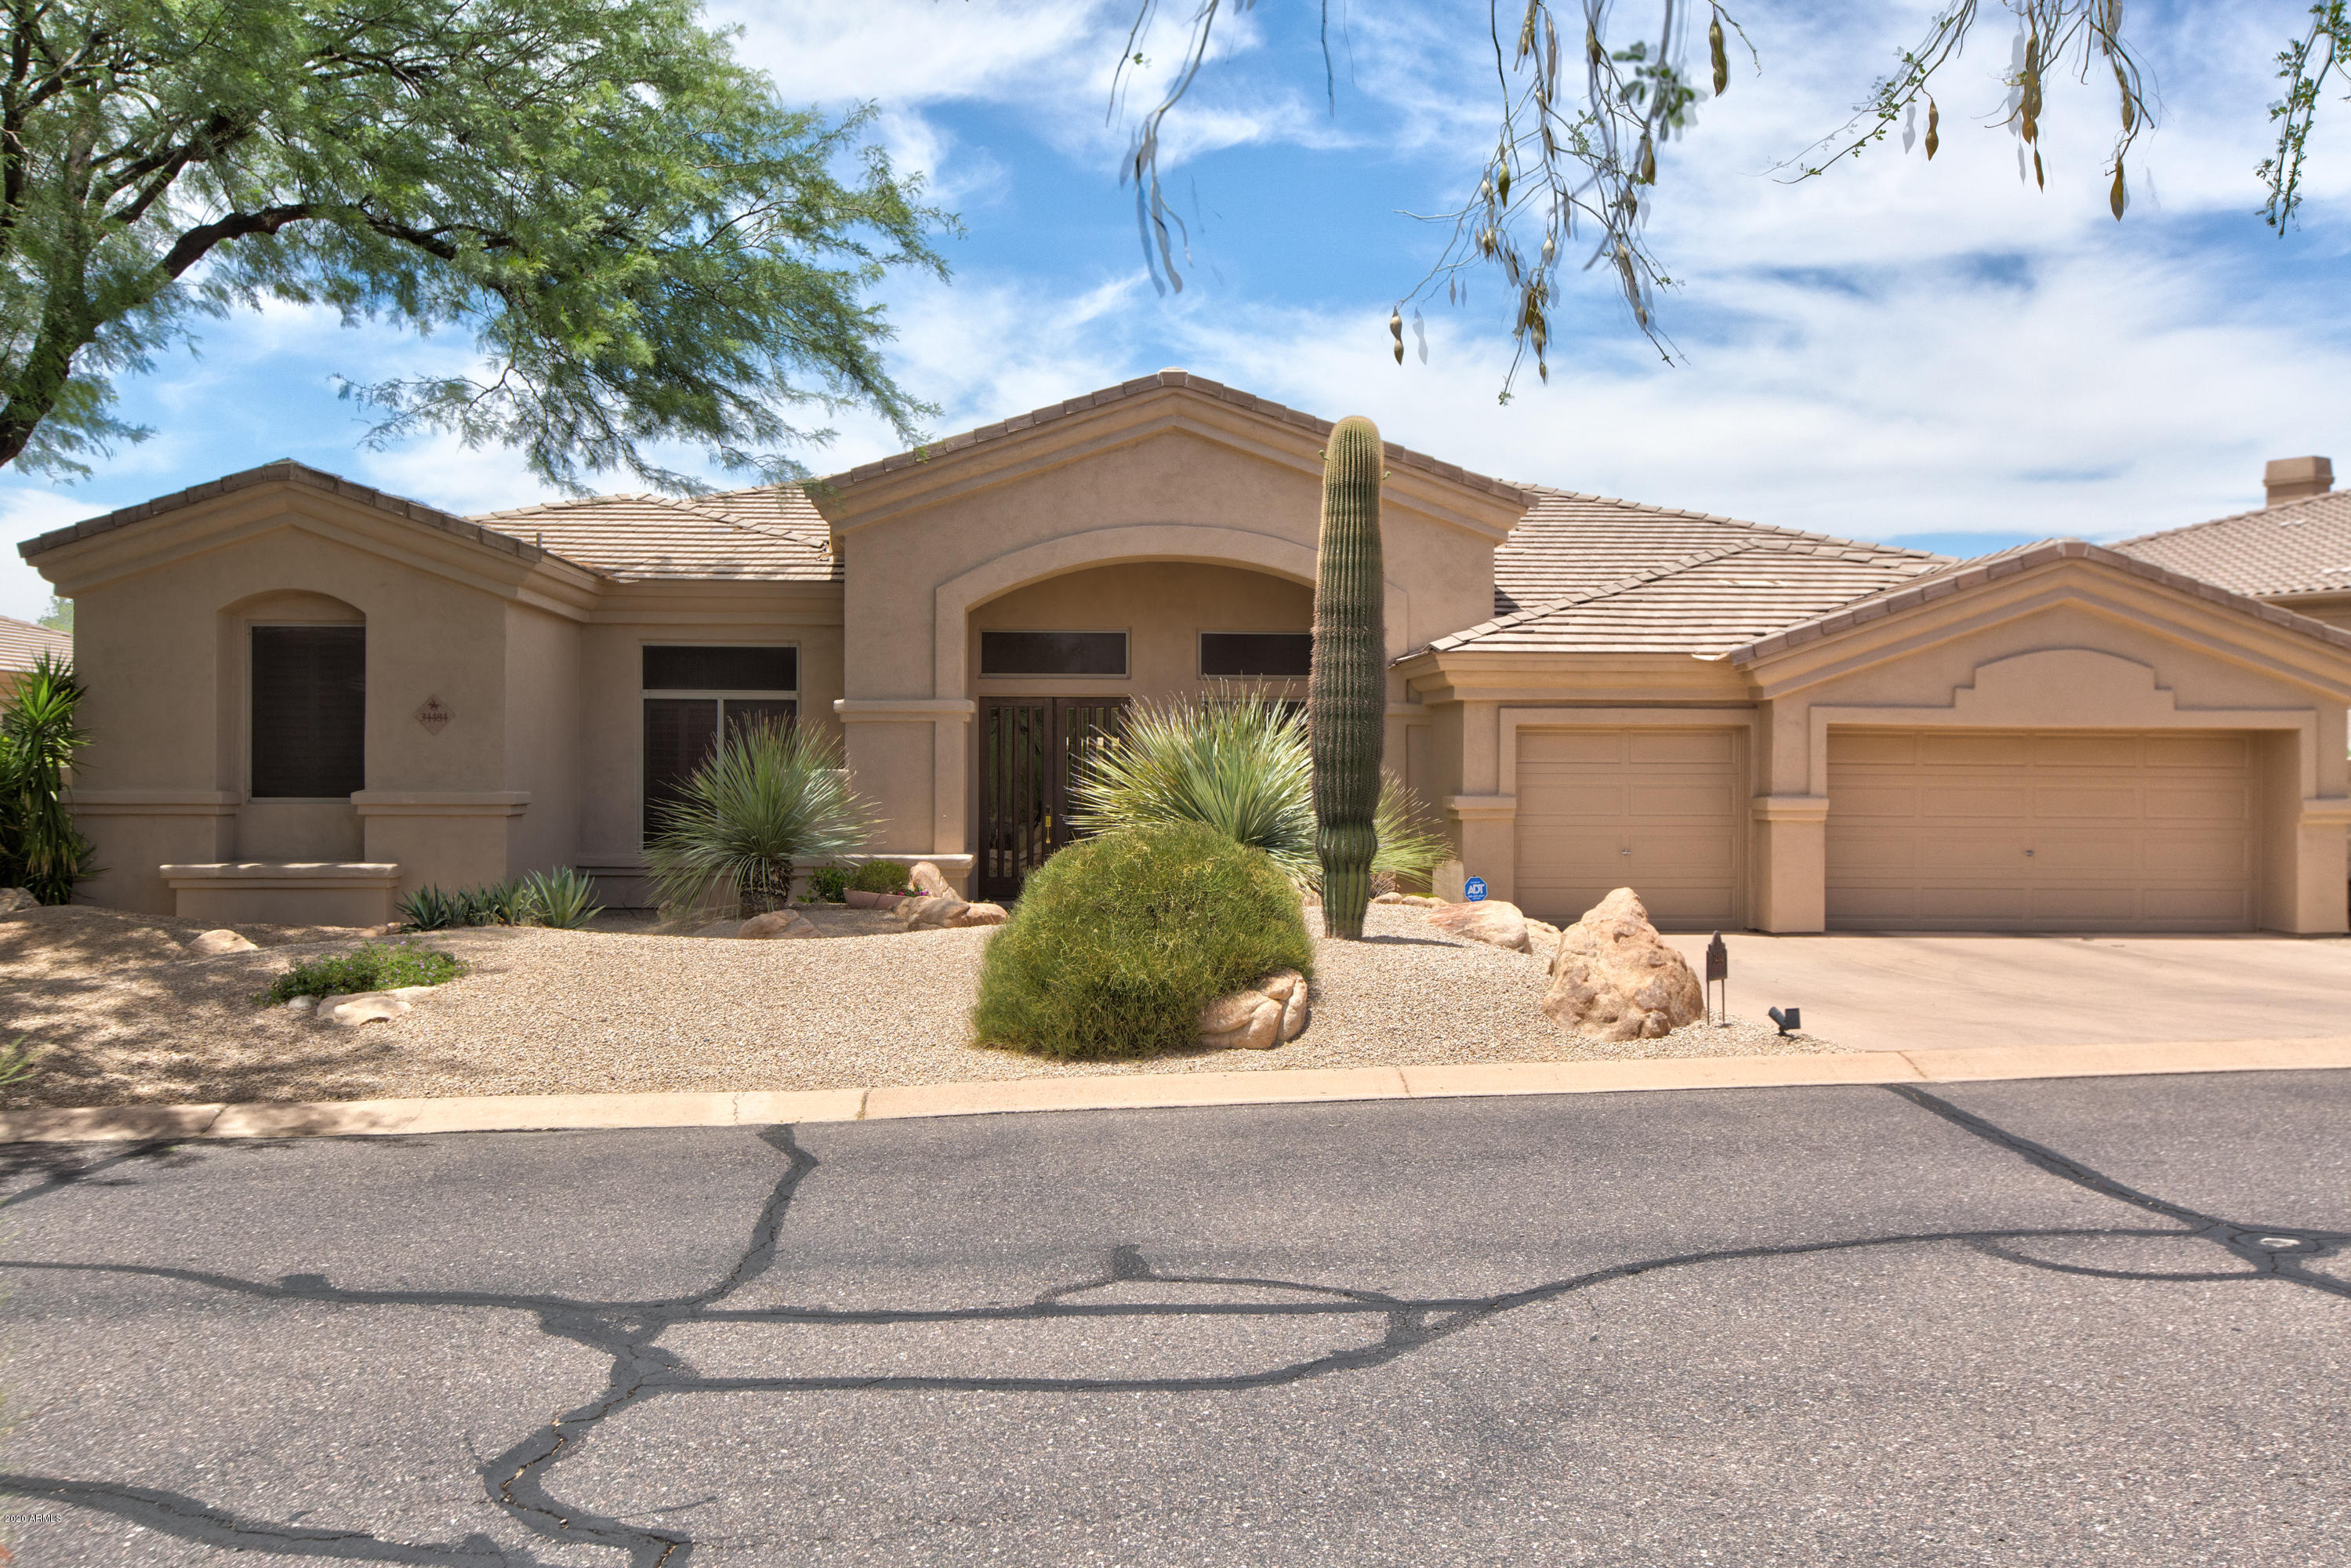 Photo of 34484 N 99th Street, Scottsdale, AZ 85262